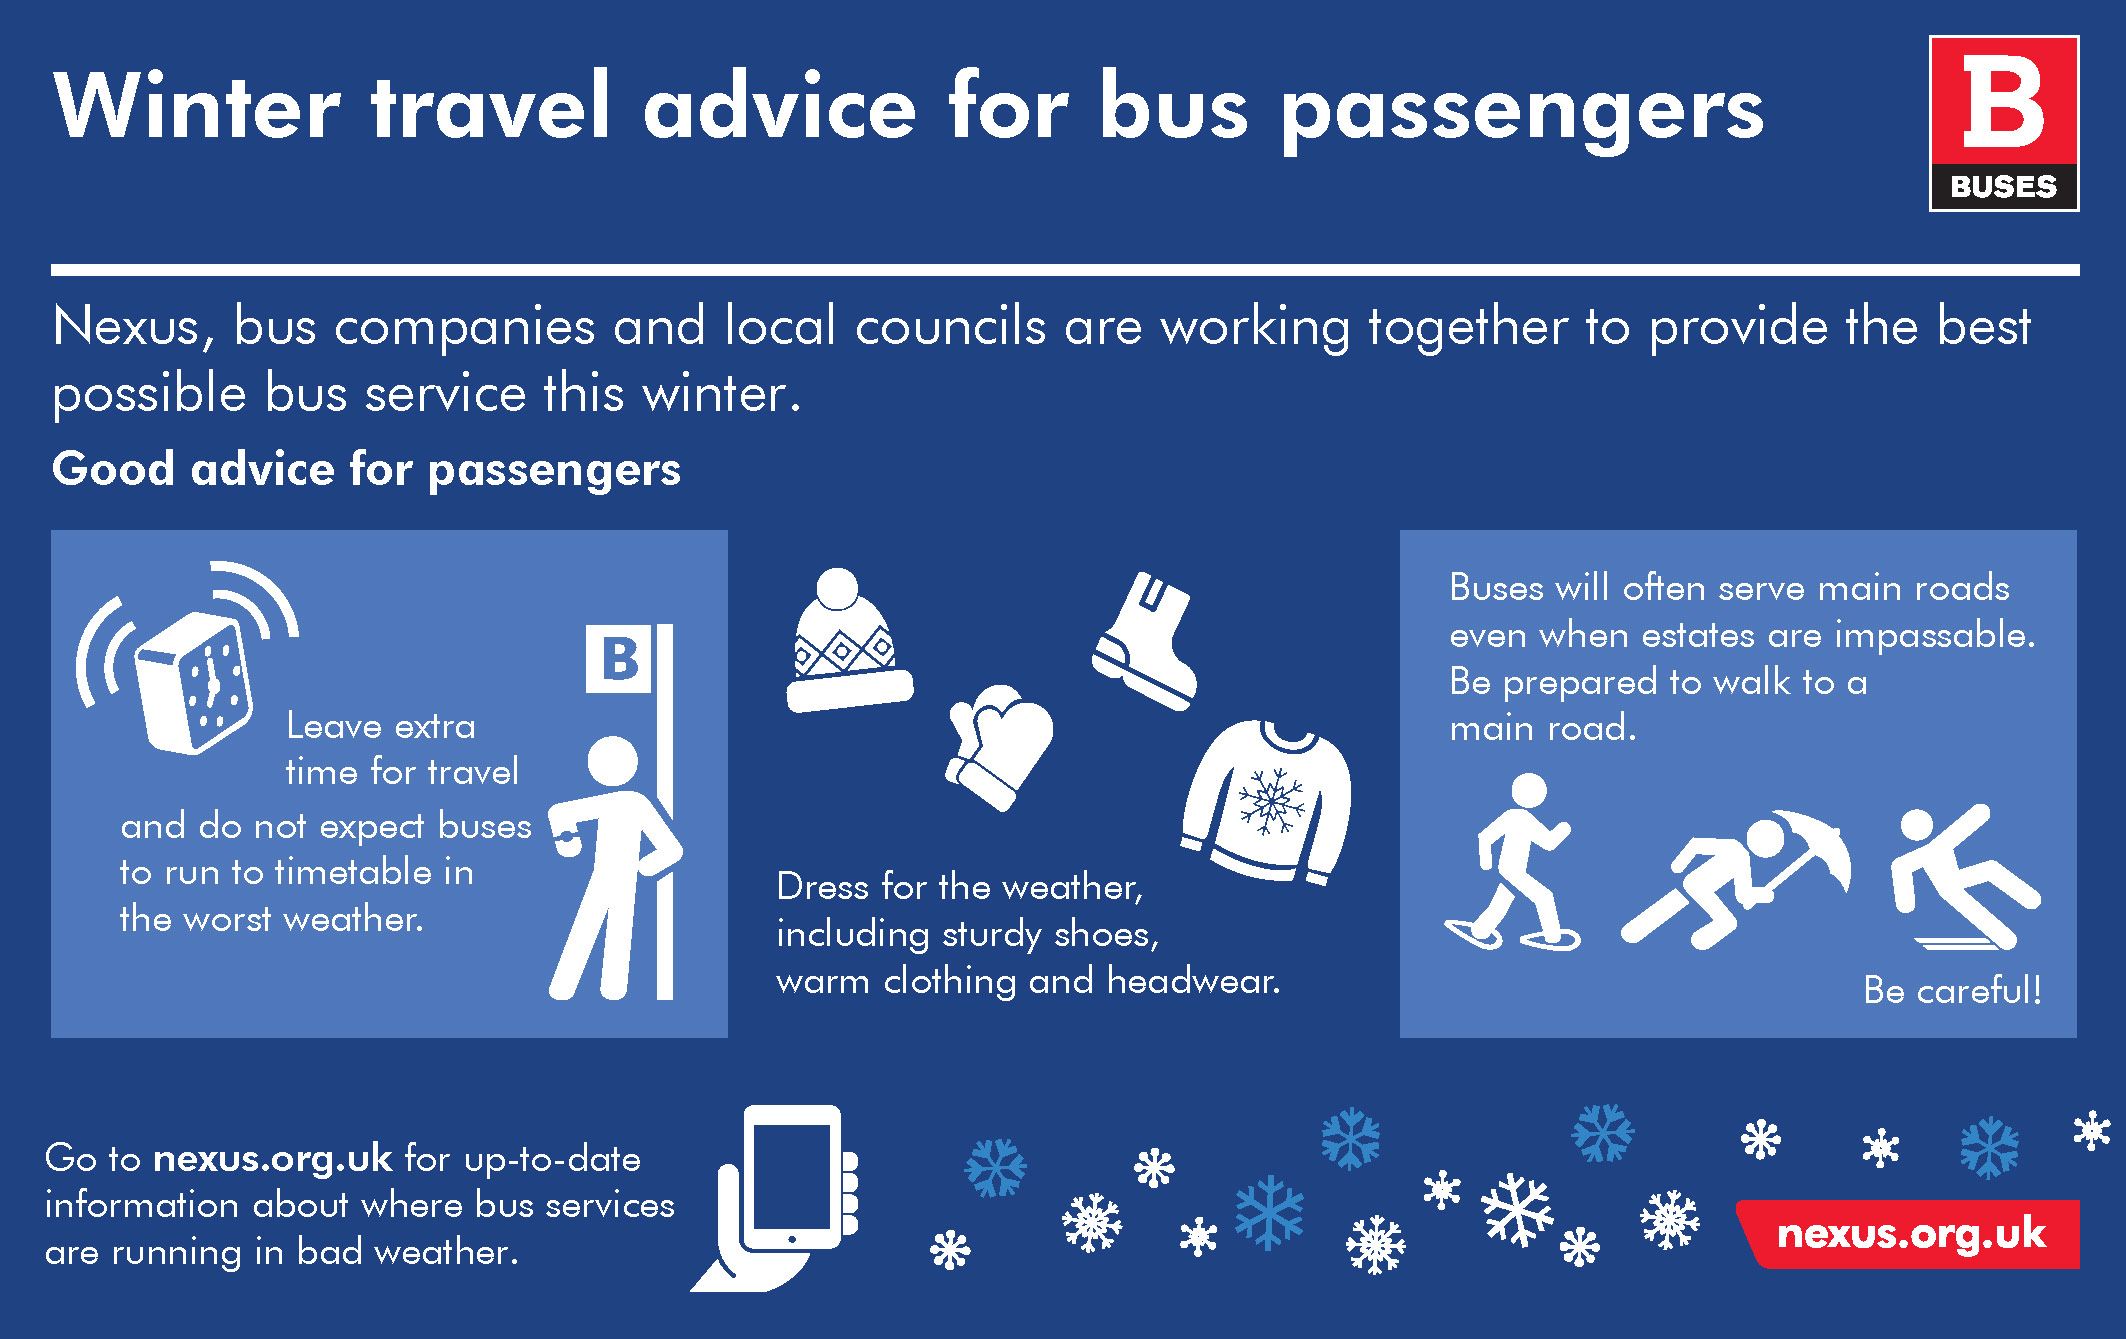 Winter travel advice for bus passengers